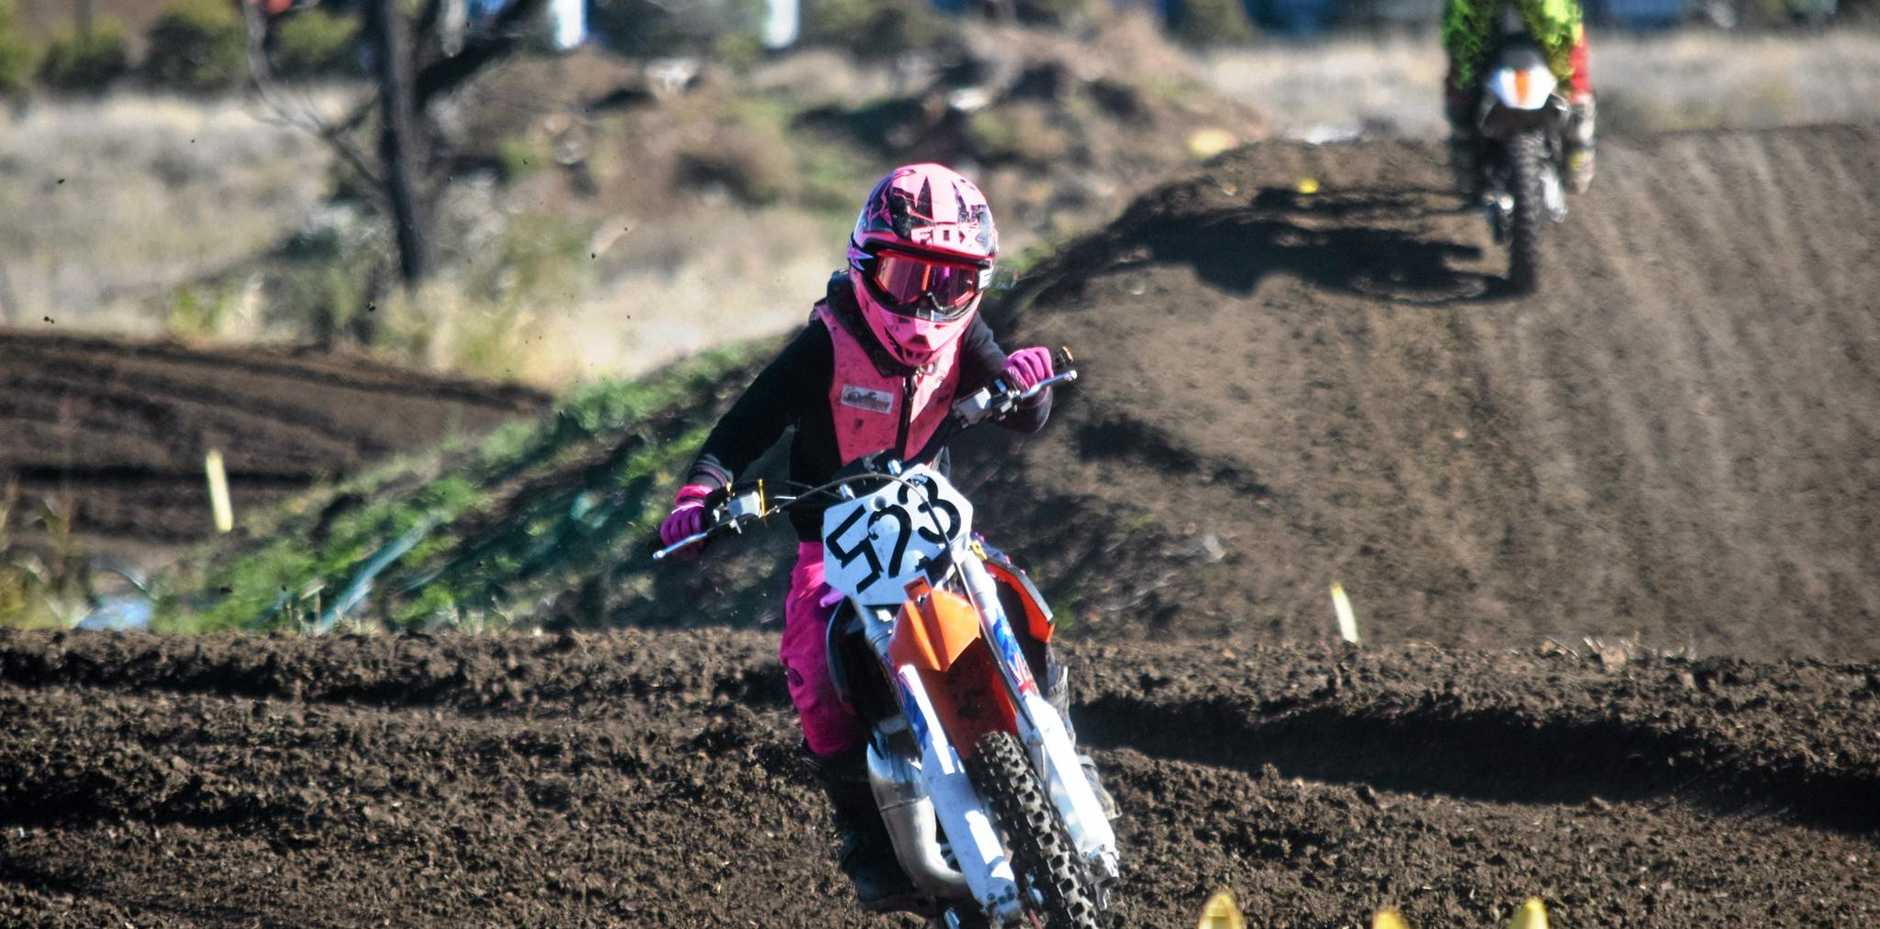 ON TRACK: All the action from the Go Girls Weekend Championship, held at the Roma Motocross Track.